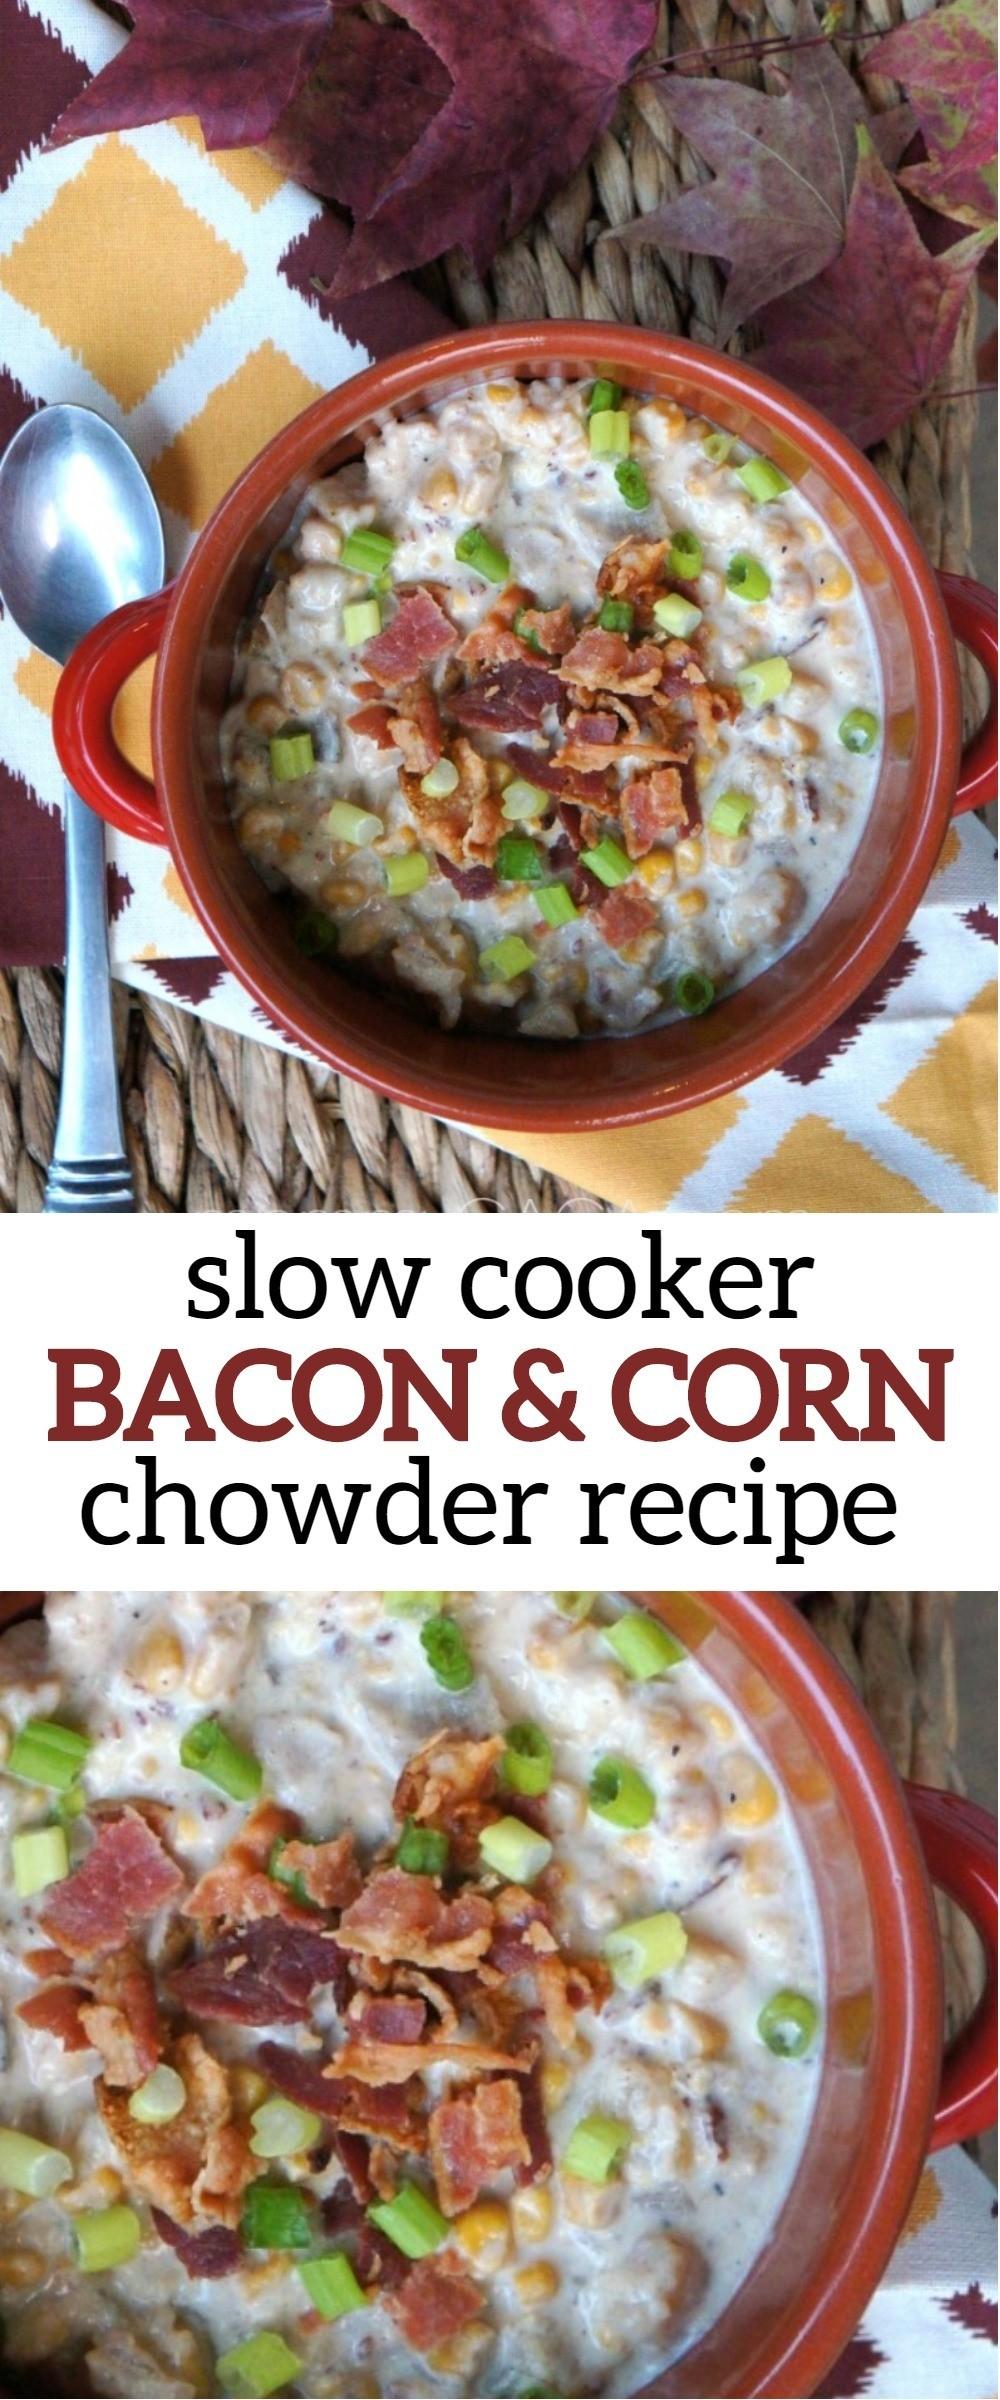 Slow cooker Hearty Bacon and Corn Chowder Soup